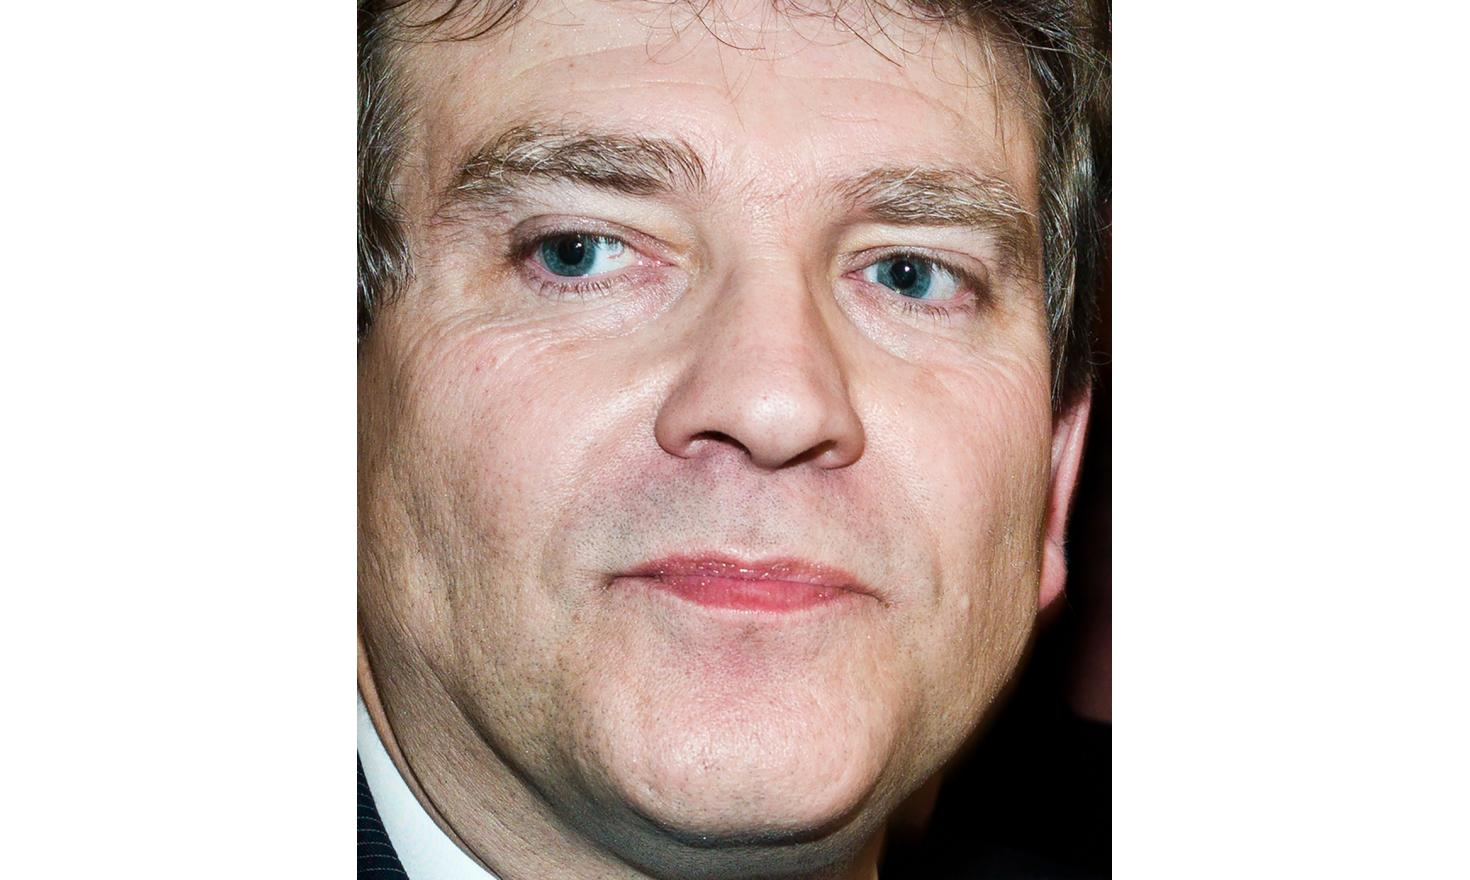 Arnaud Montebourg at his meeting at the Gymnase Jean-Jaurès in Paris